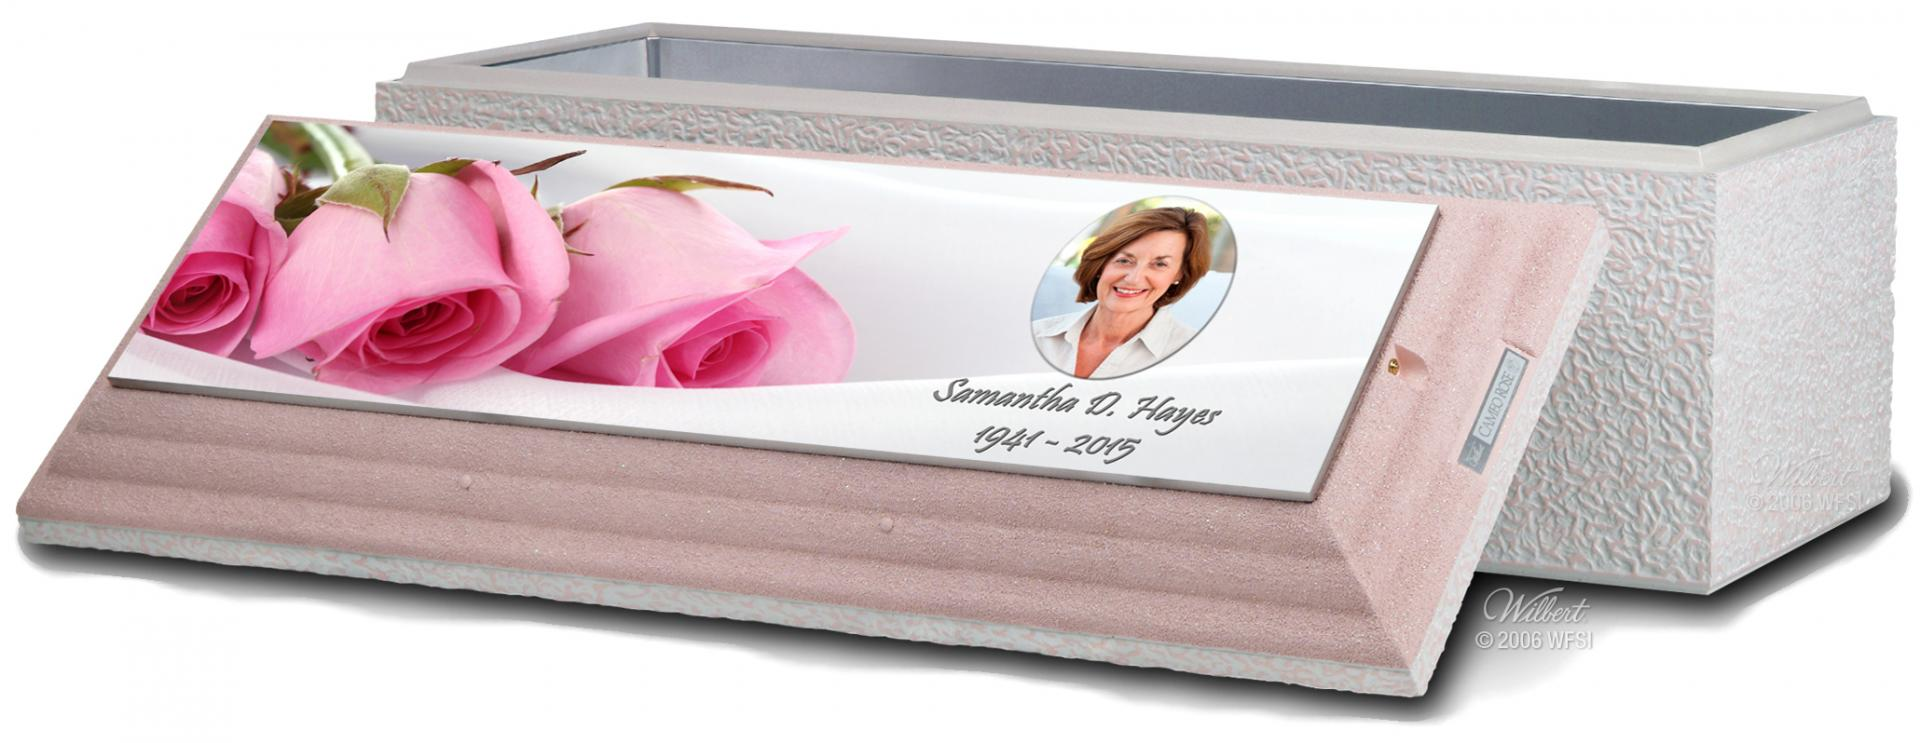 Turner Vault Company | Burial Vaults | Toledo and Lima, OH